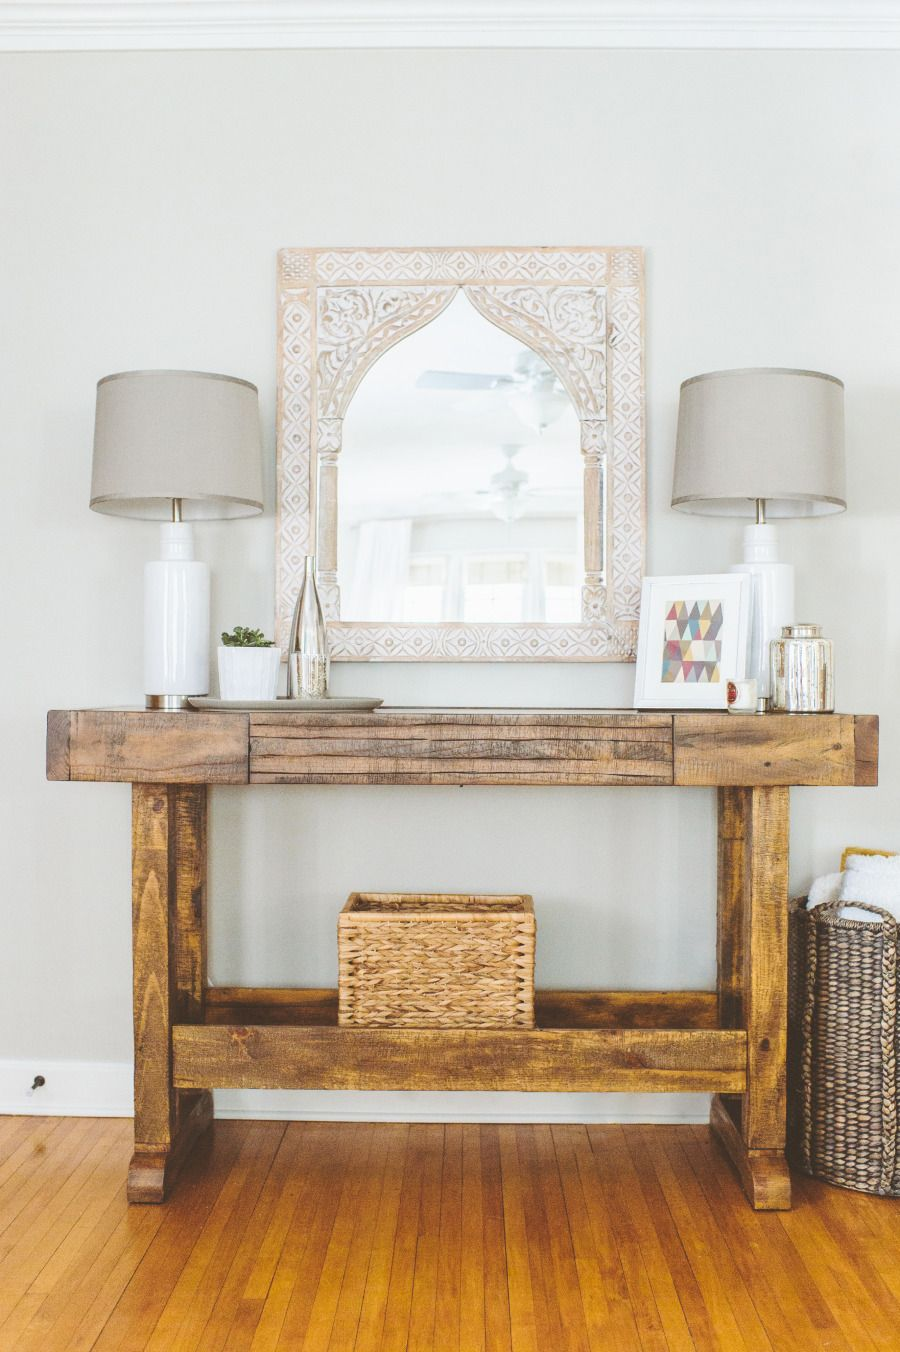 Get thrifty: http://www.stylemepretty.com/living/2014/01/22/20-ways-to-decorate-your-walls/